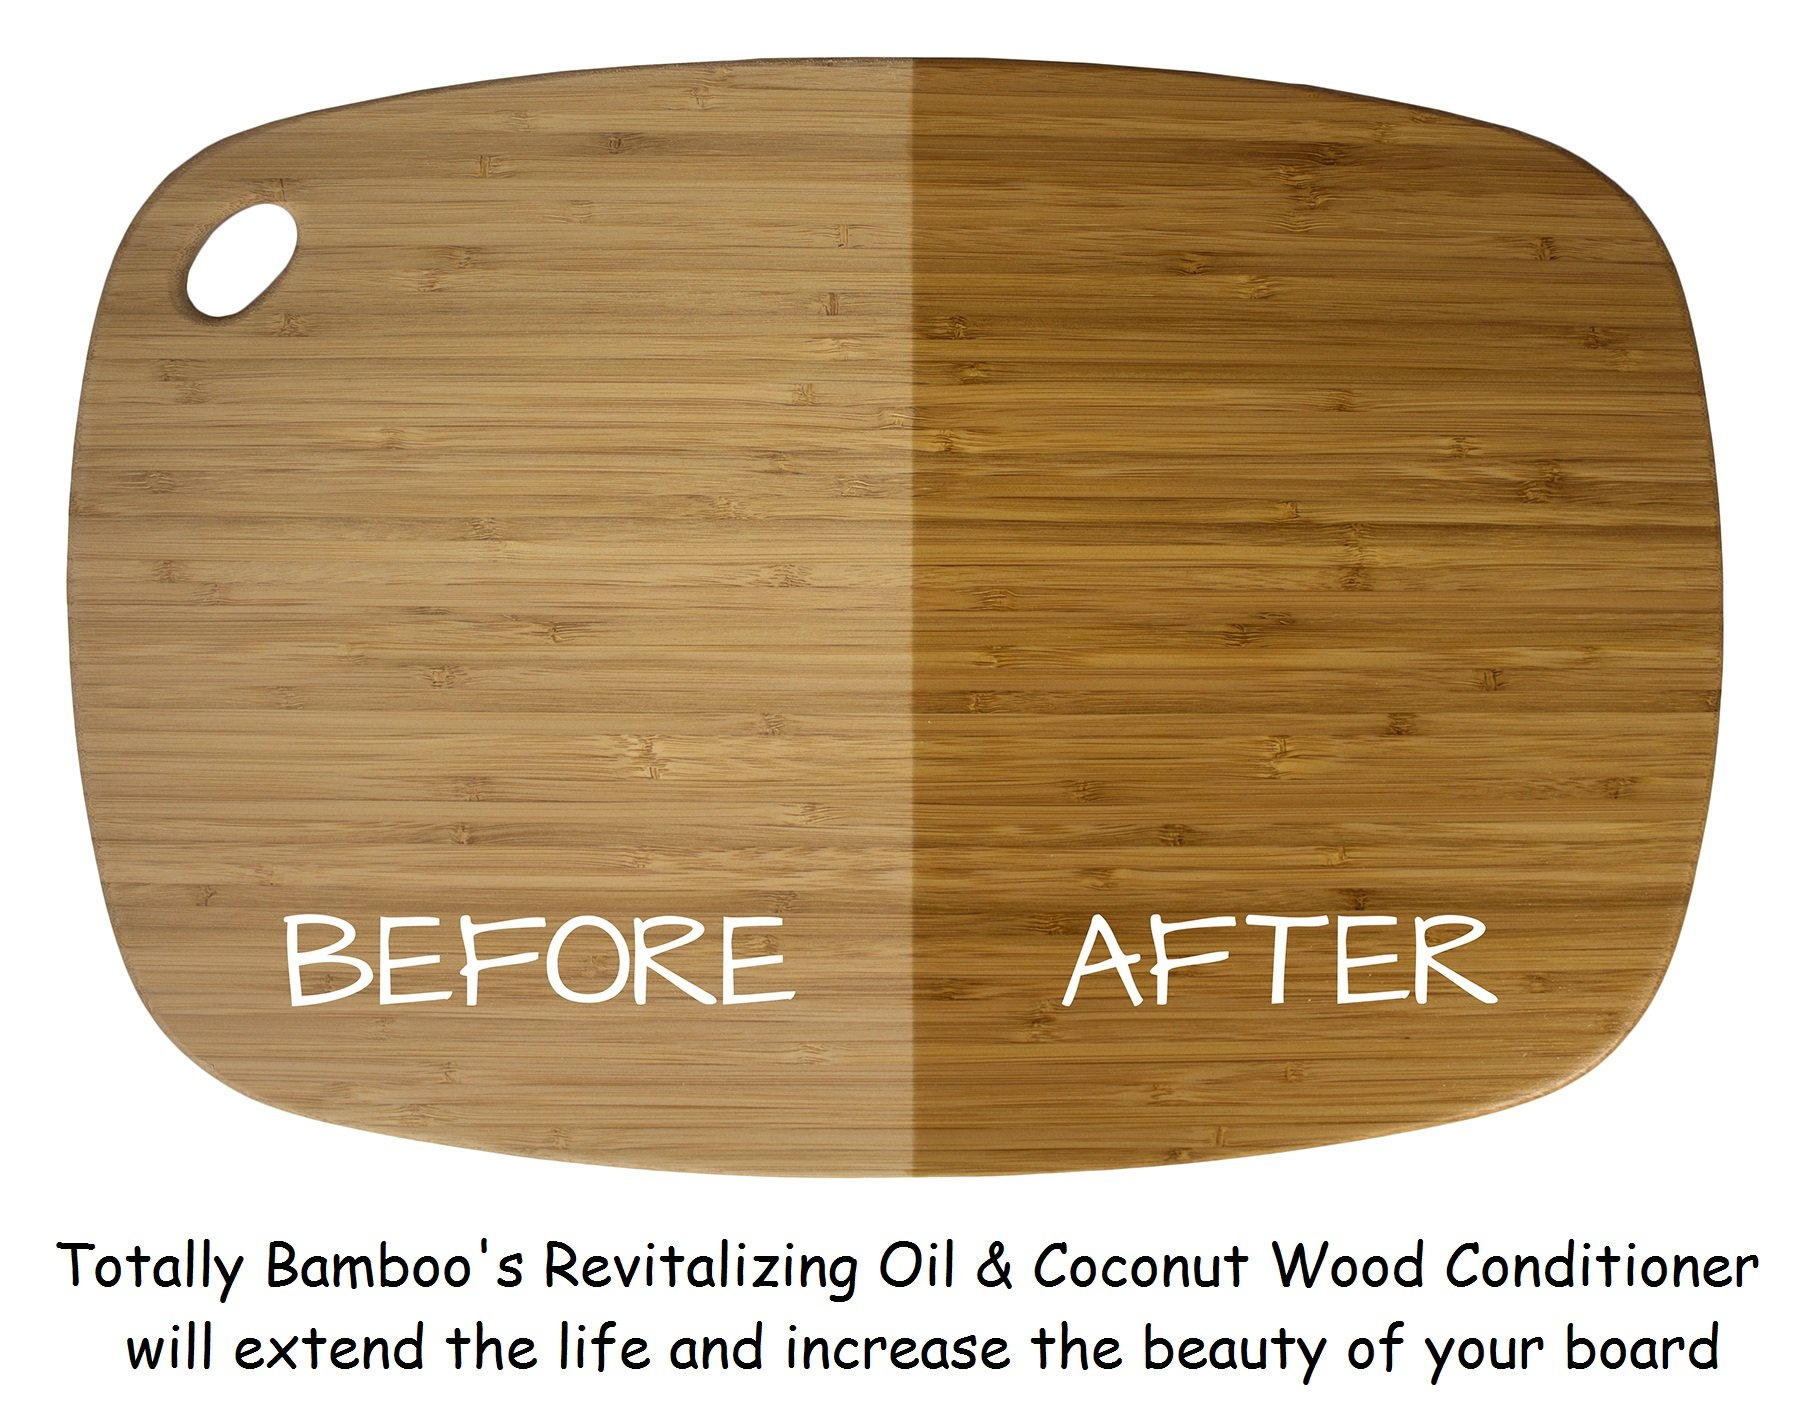 Totally Bamboo Revitalizing Mineral Oil for Bamboo and Hardwood Cutting Boards, Two 8-Ounce Bottles by Totally Bamboo